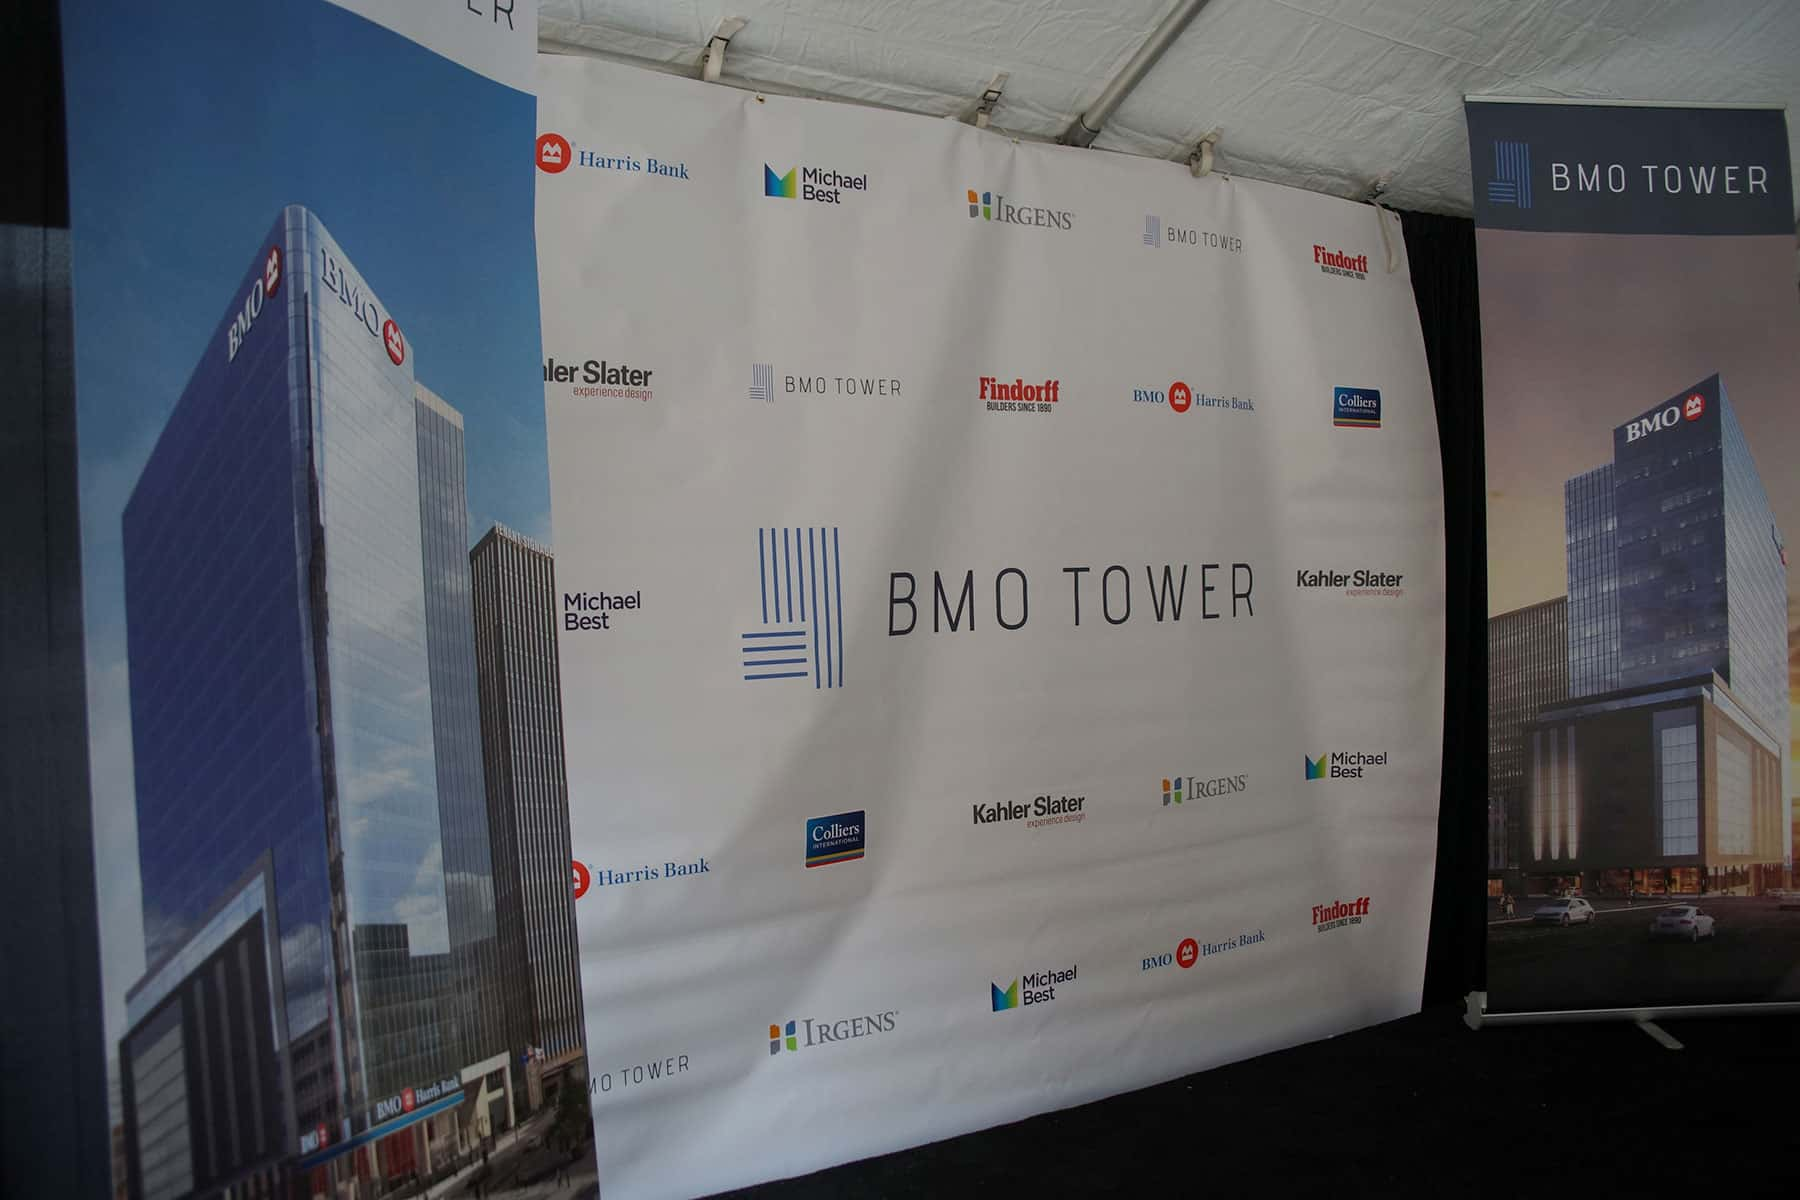 Bmo tower embarks on downtown construction with groundbreaking the 111617bmotower012 malvernweather